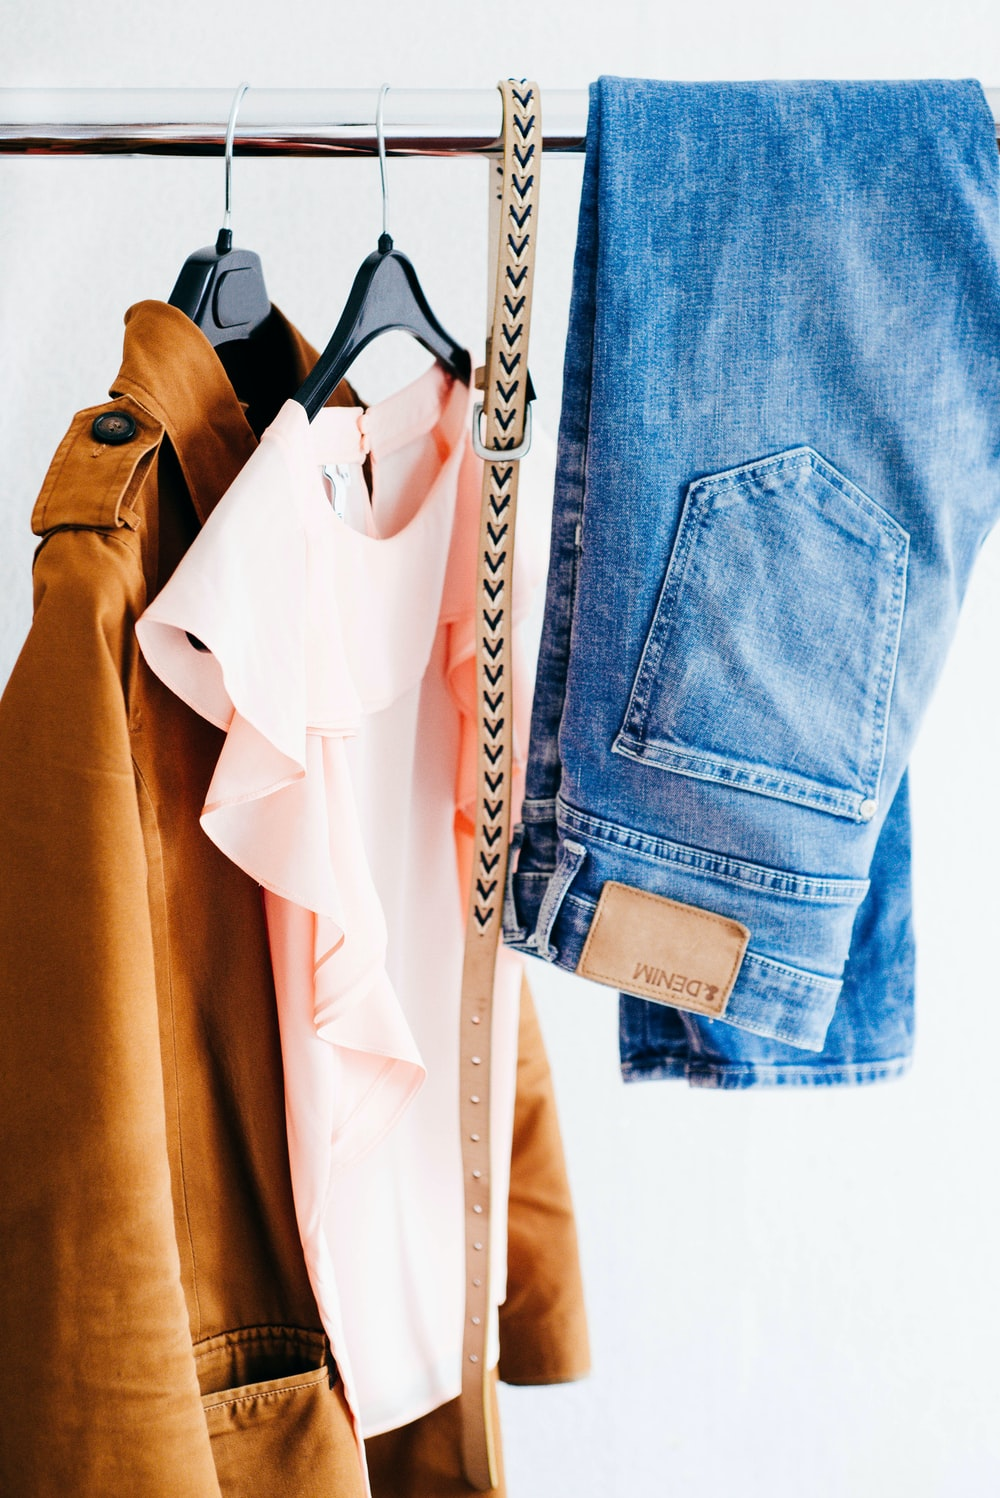 women's four assorted apparel hanged on clothes rack